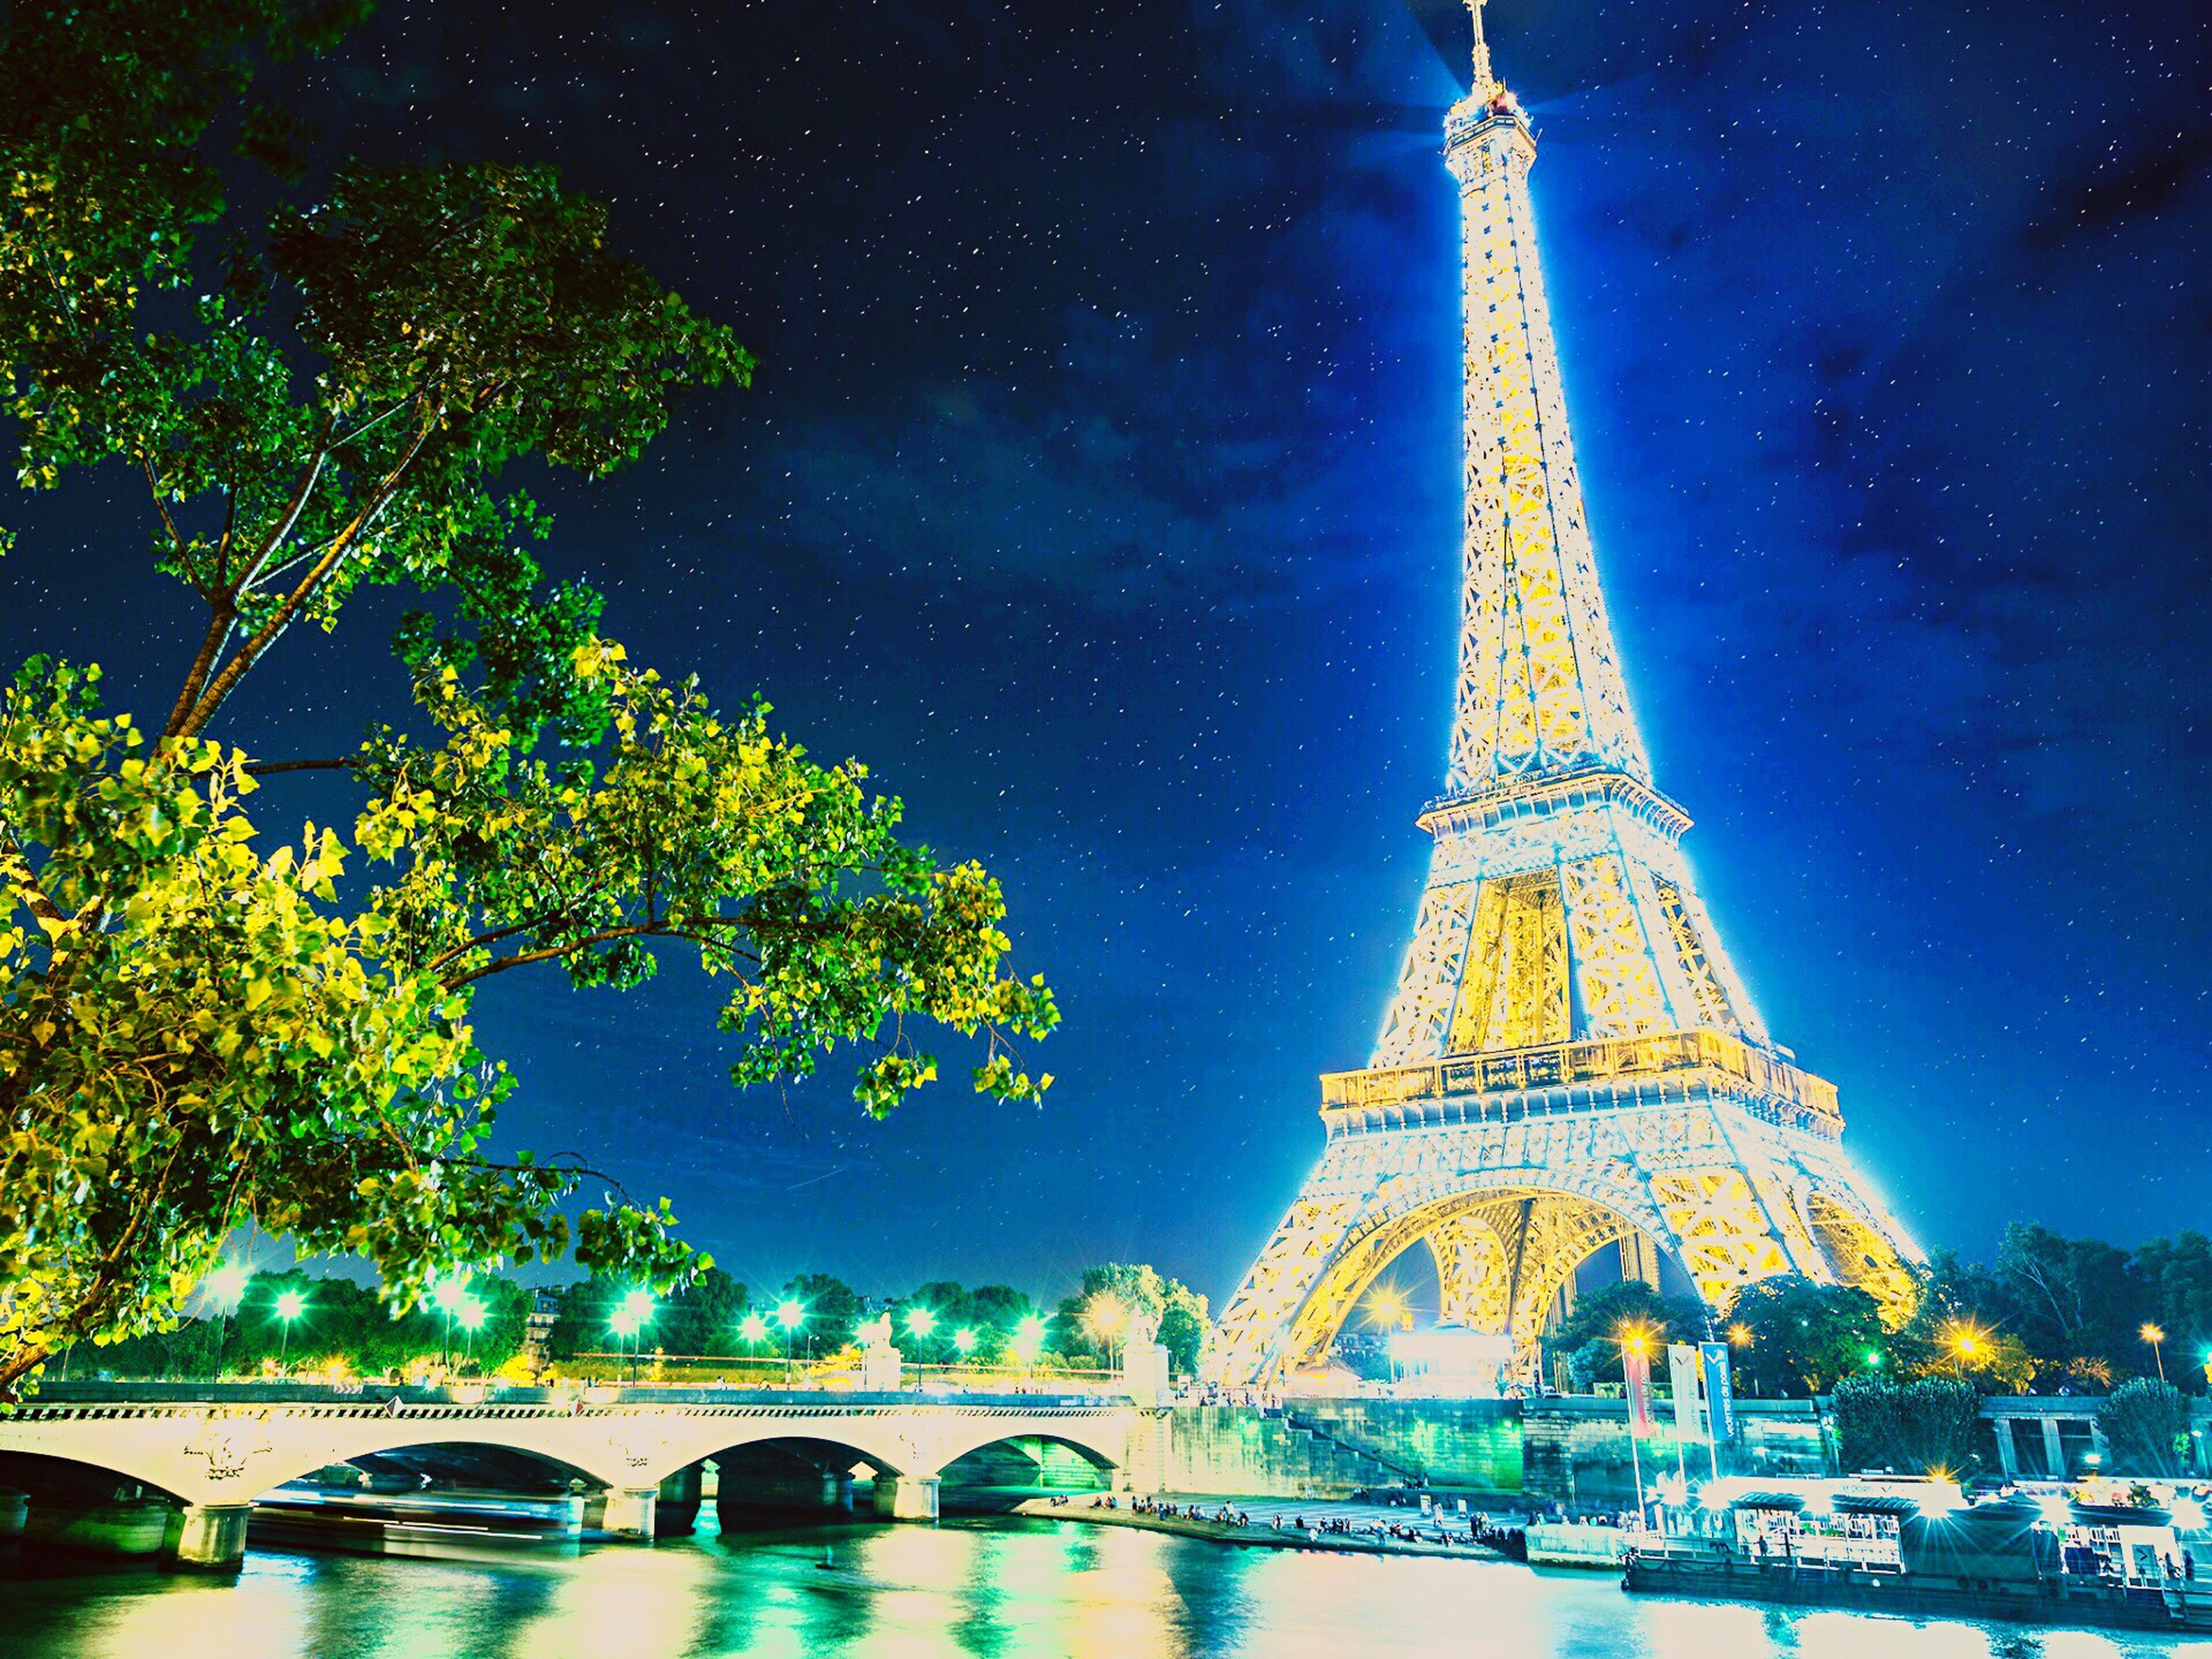 architecture, built structure, travel destinations, famous place, night, tourism, tree, international landmark, travel, sky, low angle view, illuminated, capital cities, religion, building exterior, blue, water, history, tower, connection